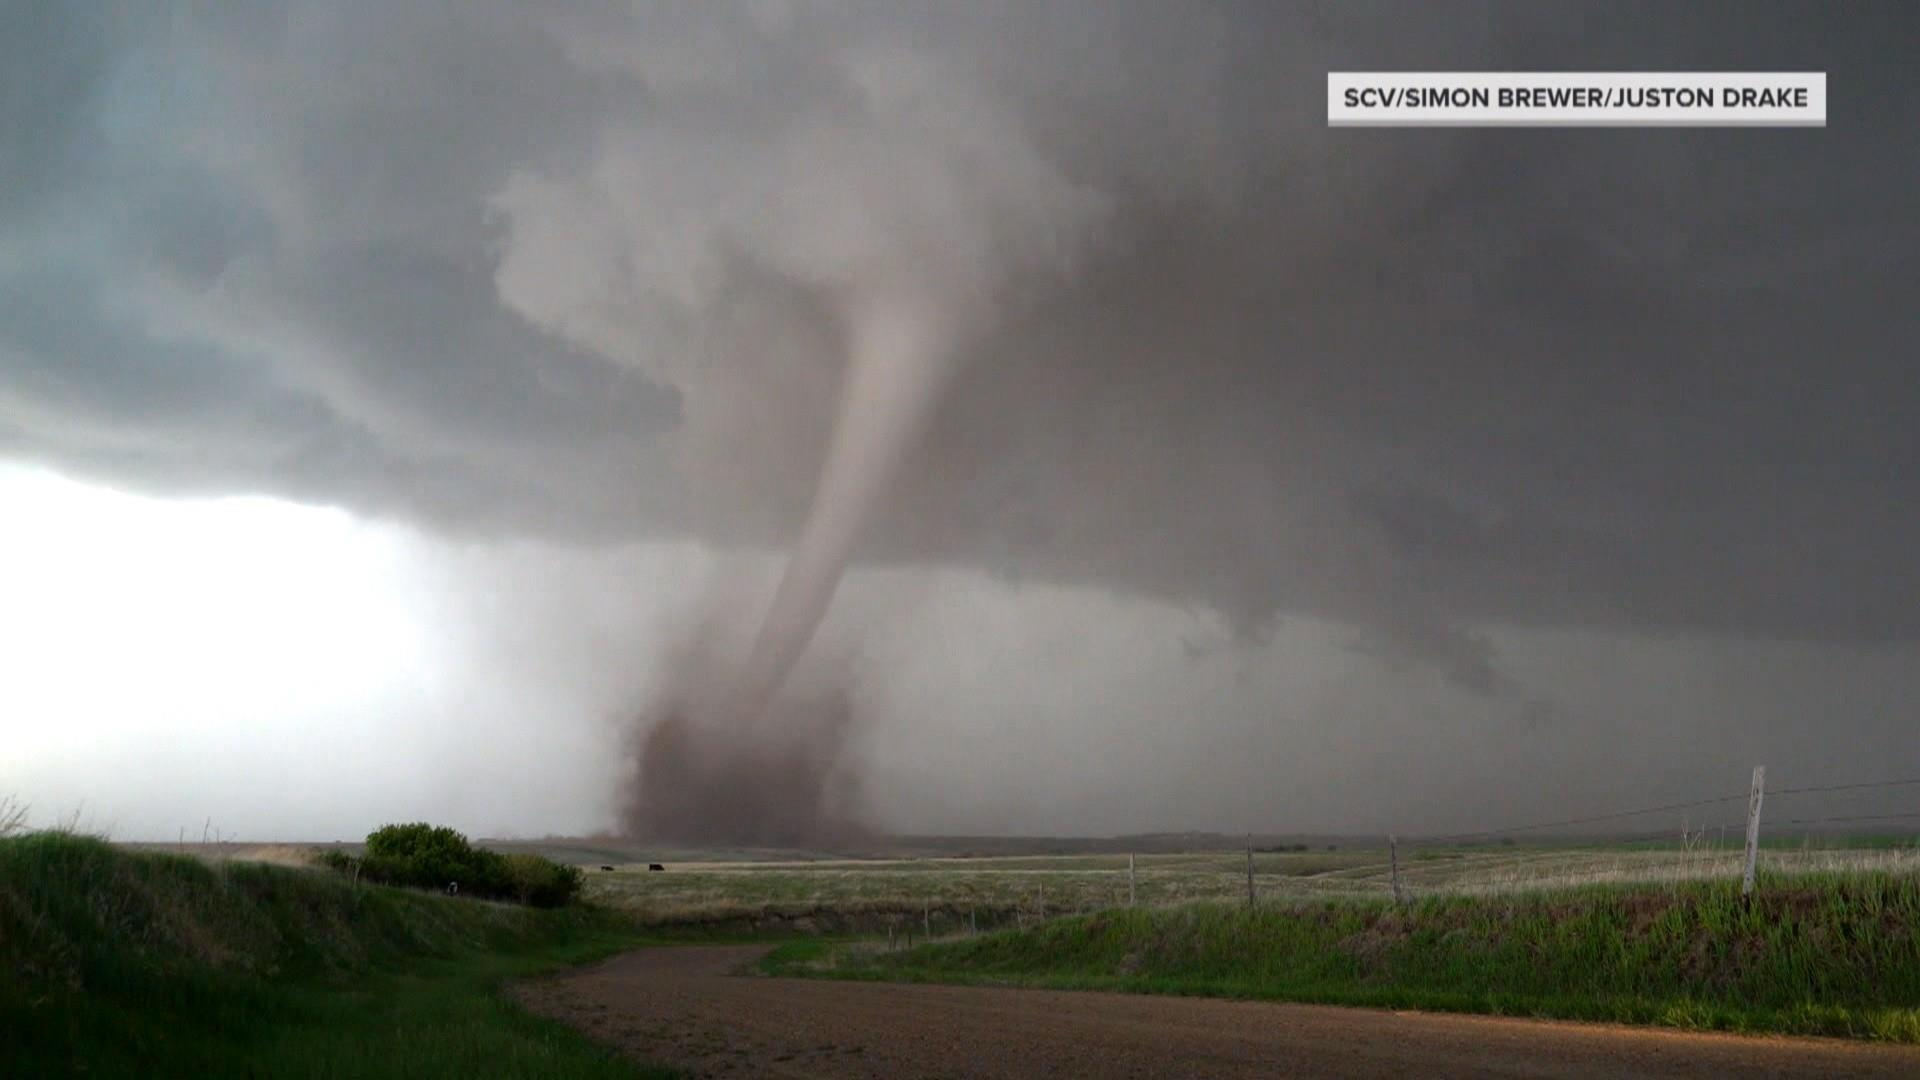 More than 50 tornadoes touch down amid severe weekend weather